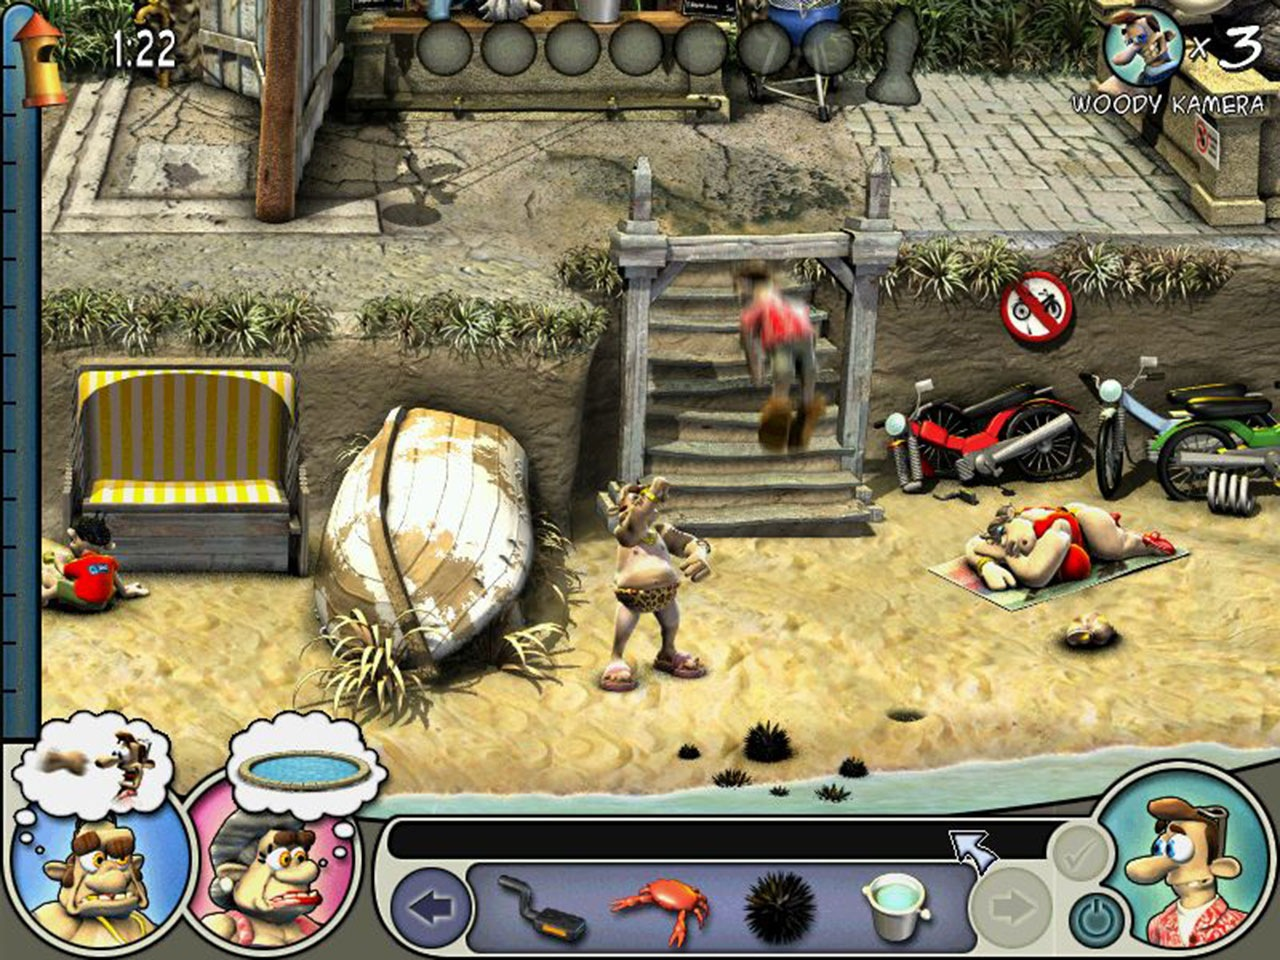 neighbours from hell 6 free download full game for pc